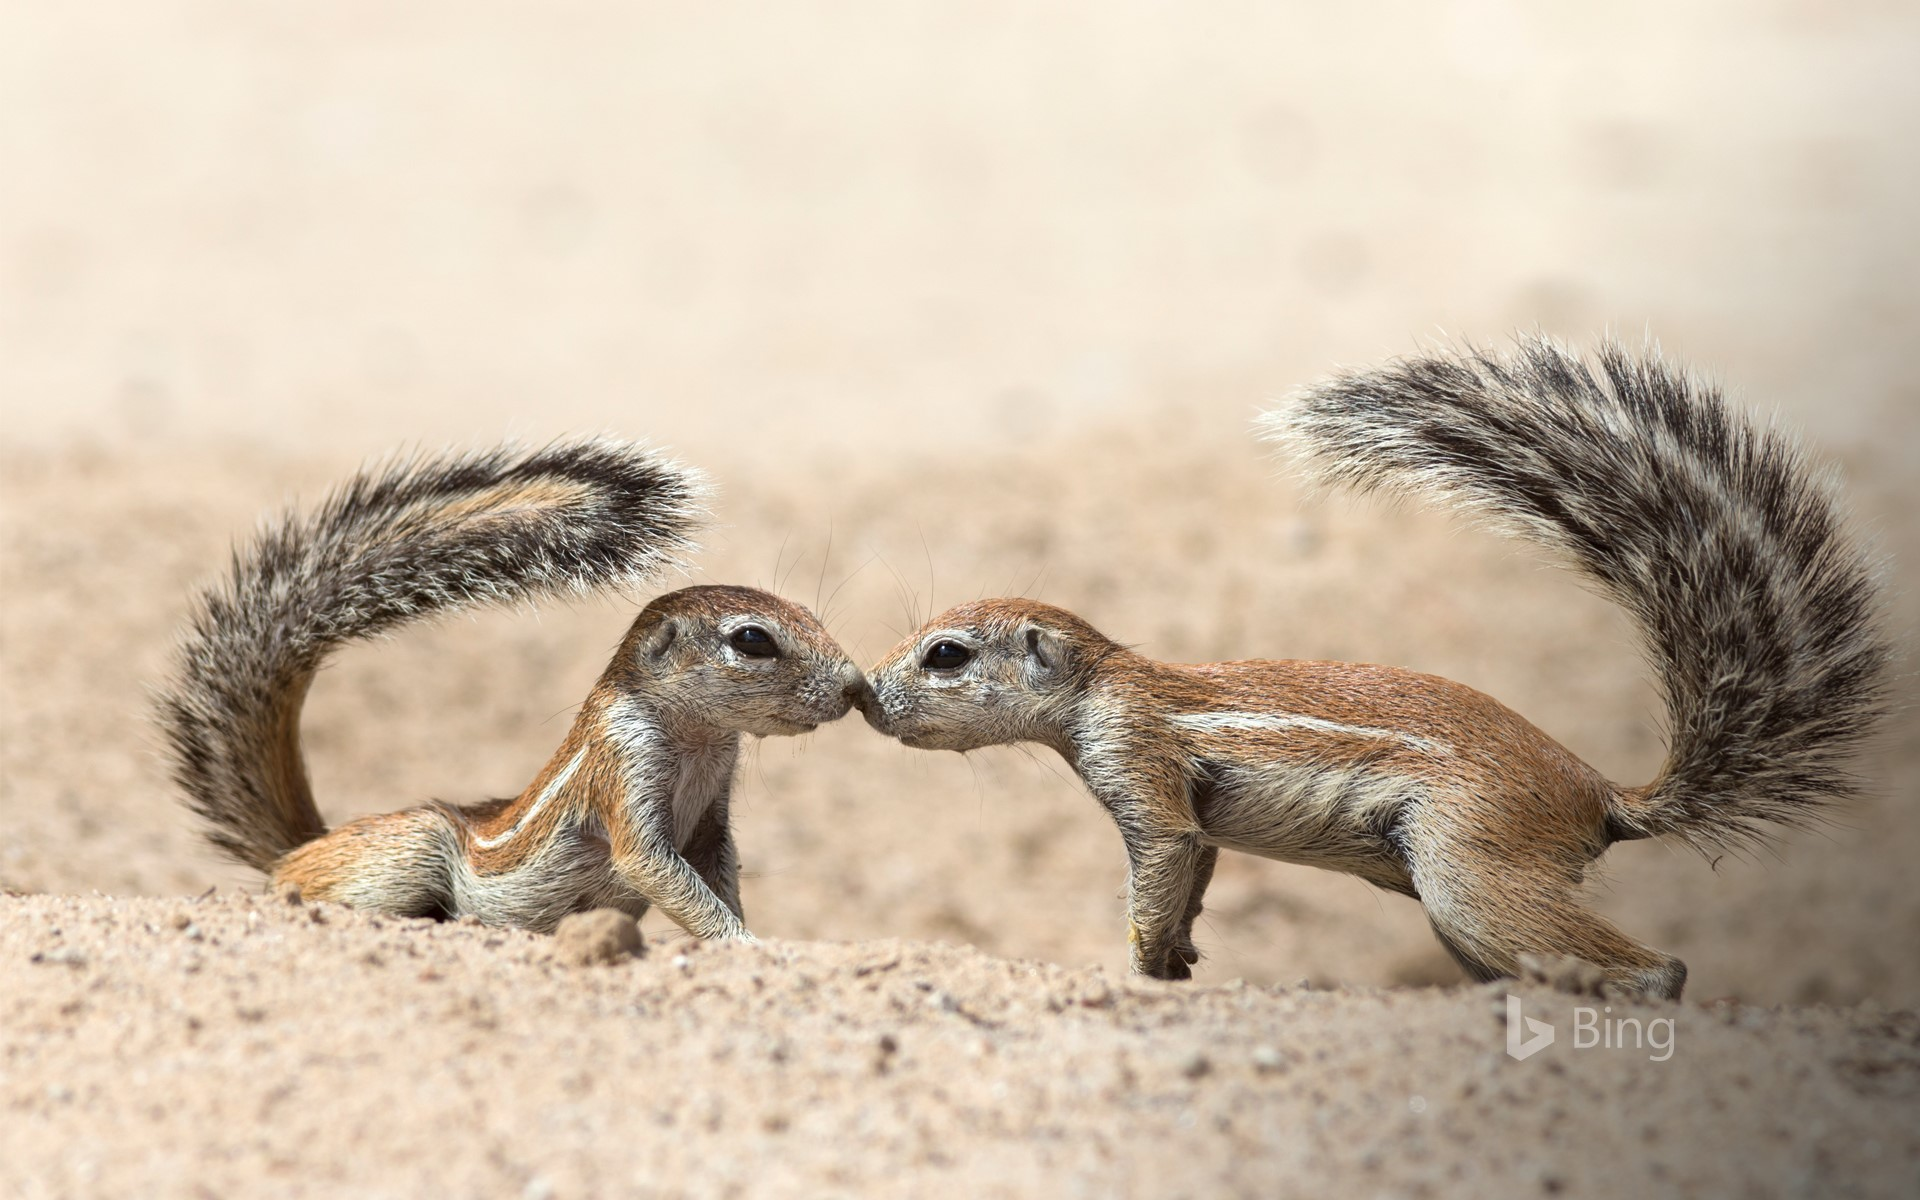 Ground squirrels greeting each other, in the Kgalagadi Transfrontier Park, North Cape, South Africa